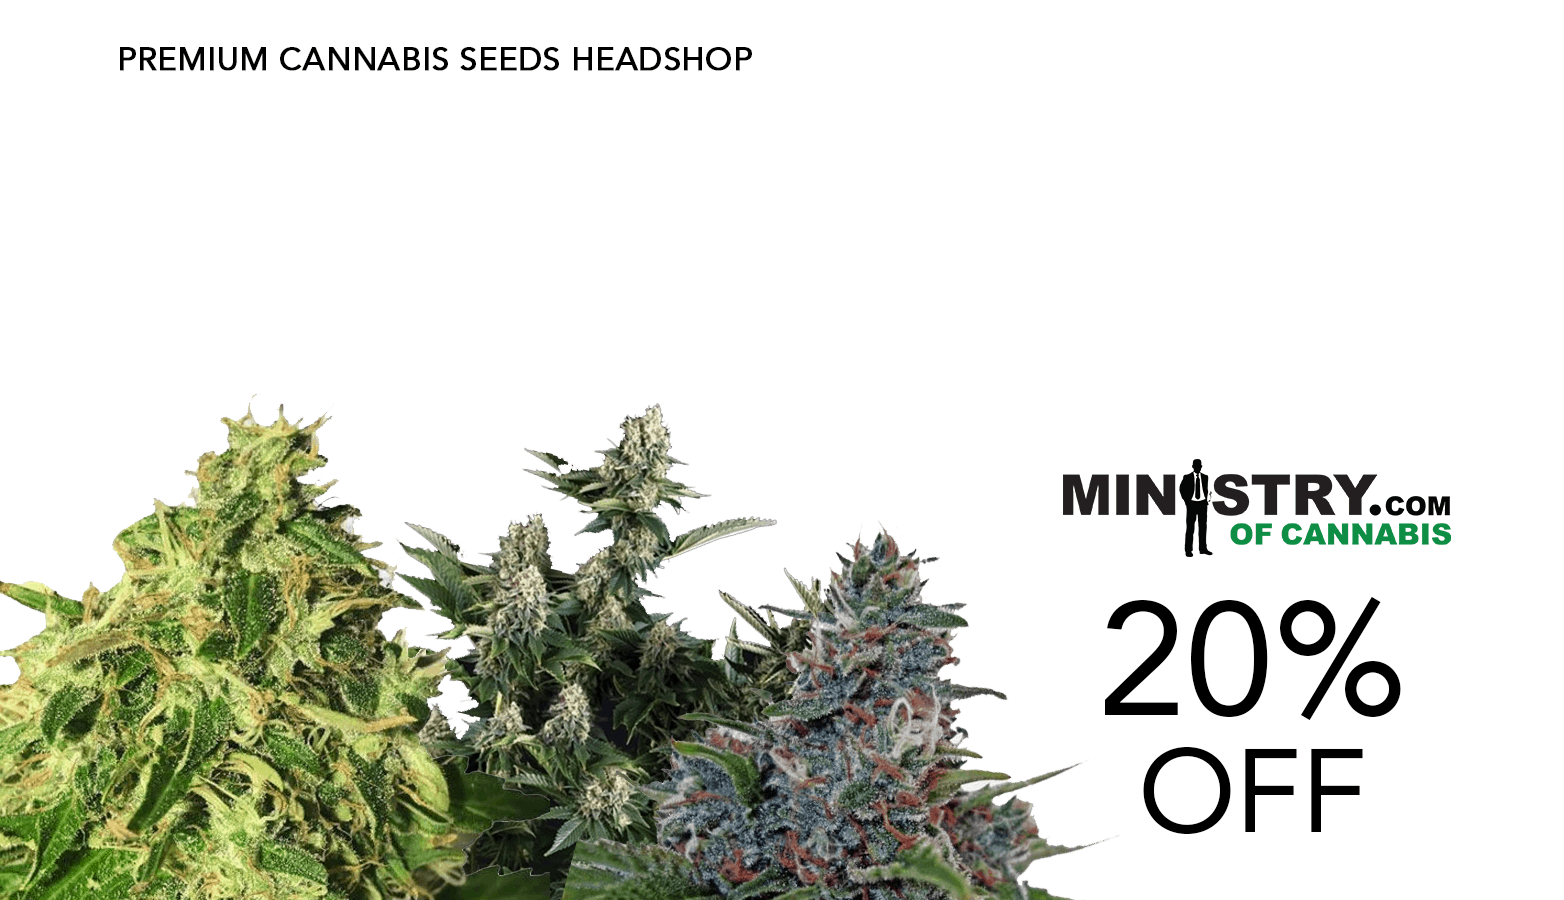 Ministry Of Cannabis CBD Coupon Code Promo